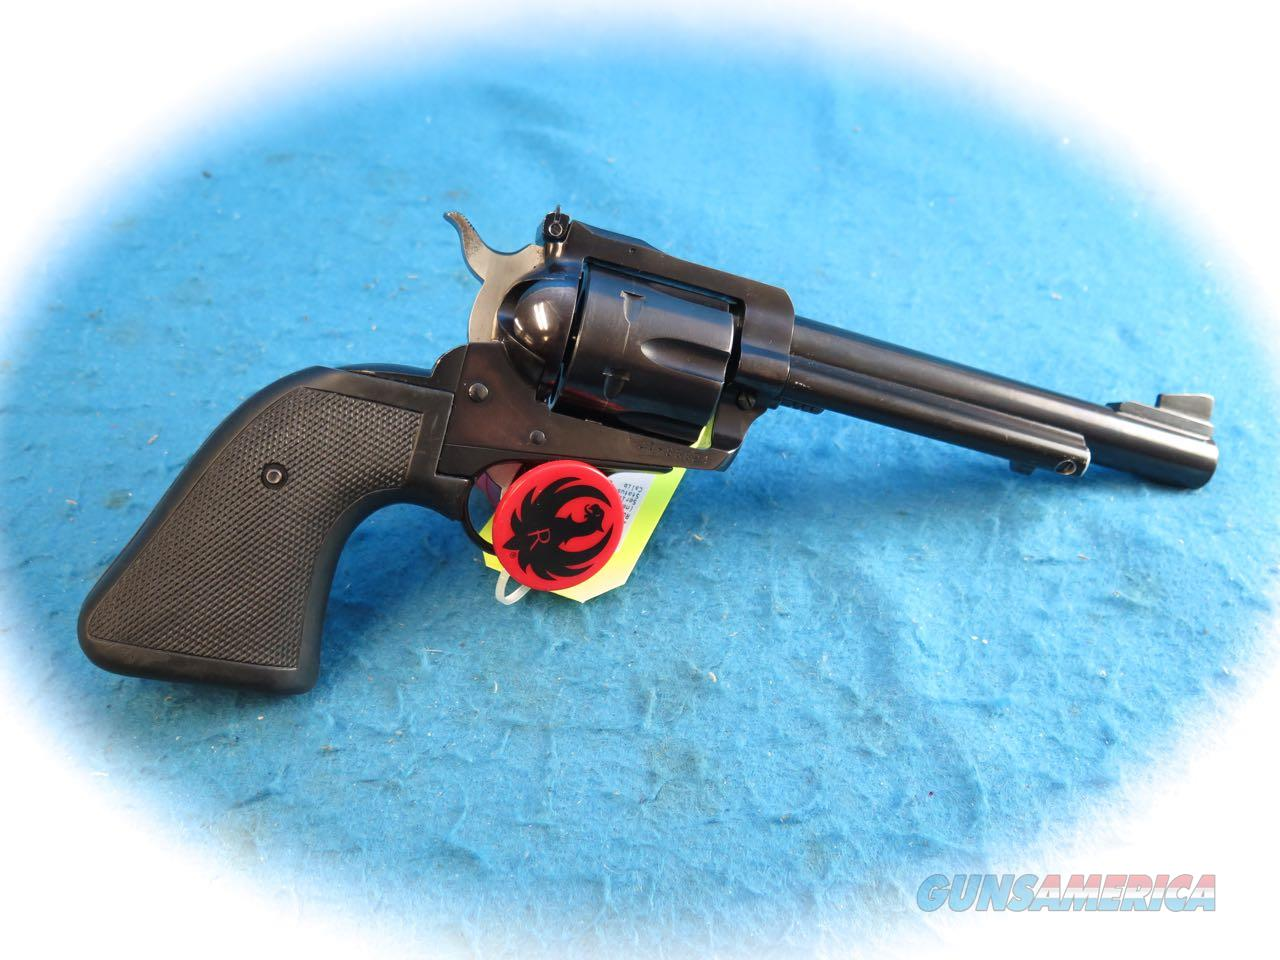 Ruger New Model Blackhawk .41 Magnum Caliber **Used**  Guns > Pistols > Ruger Single Action Revolvers > Blackhawk Type